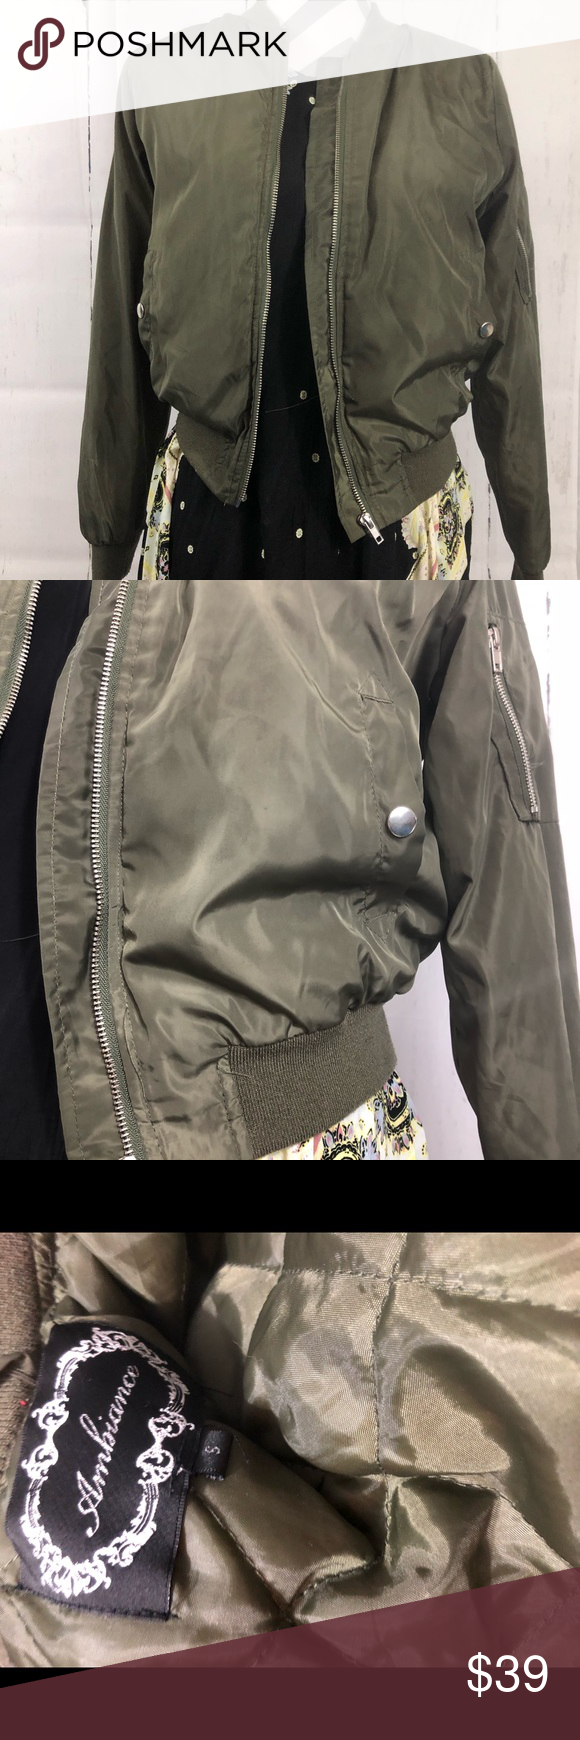 Olive Green Ambiance Bomber Jacket Olive Green Jacket With Sheen New Without Tags Condition Ambiance Brand Wom Olive Green Jacket Green Jacket Clothes Design [ 1740 x 580 Pixel ]